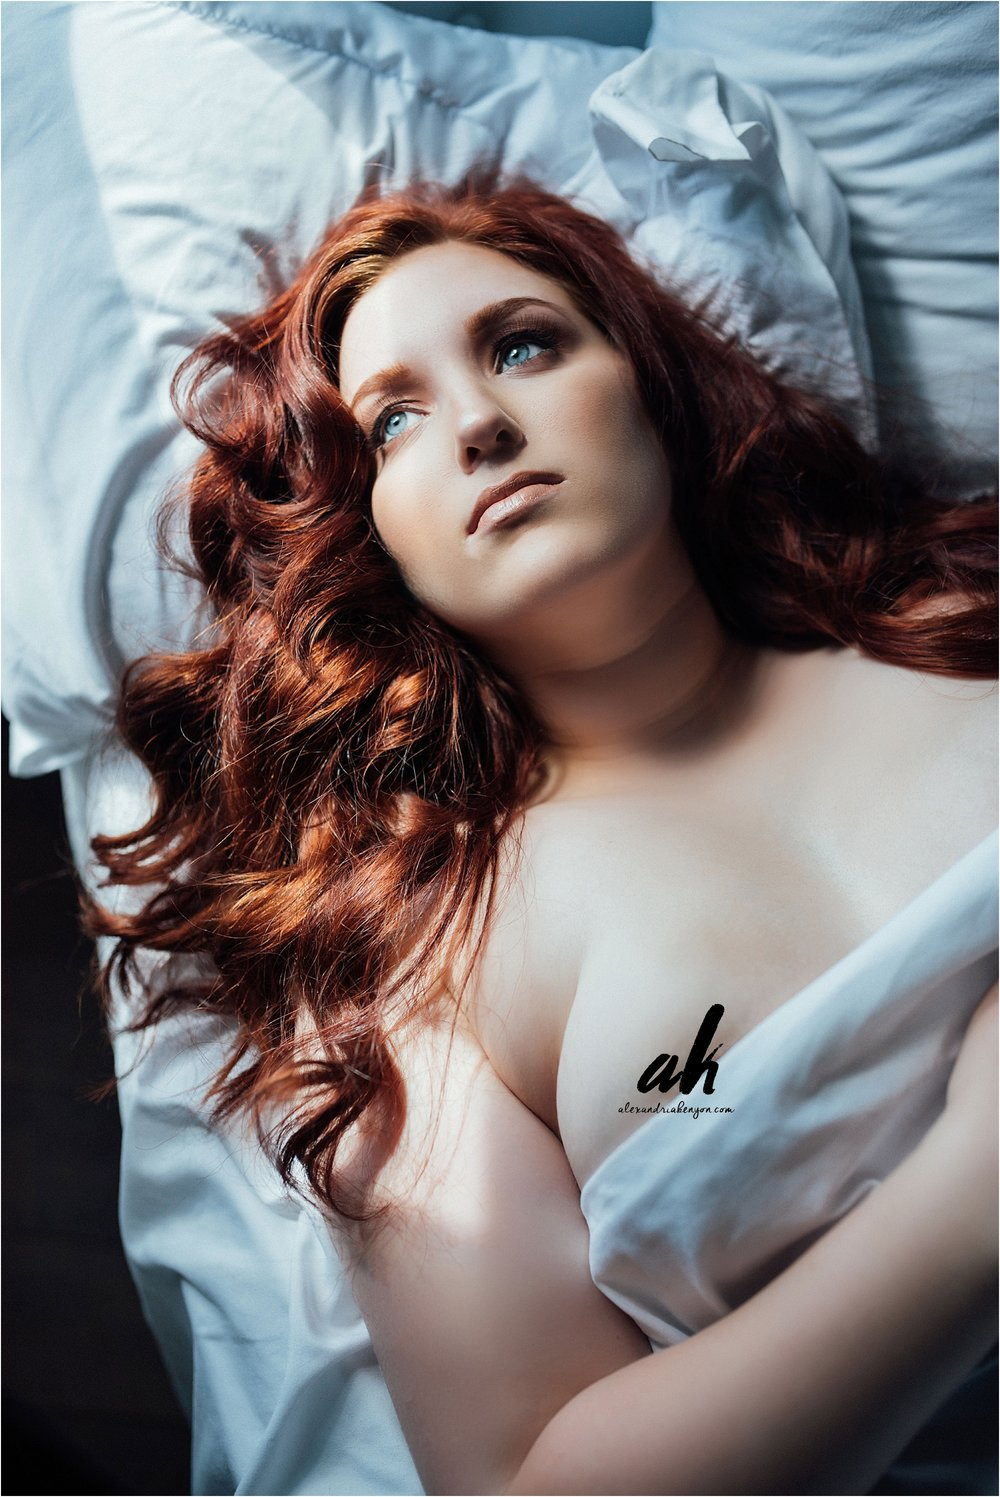 blue-eyes-red-hair-boudoir-photography